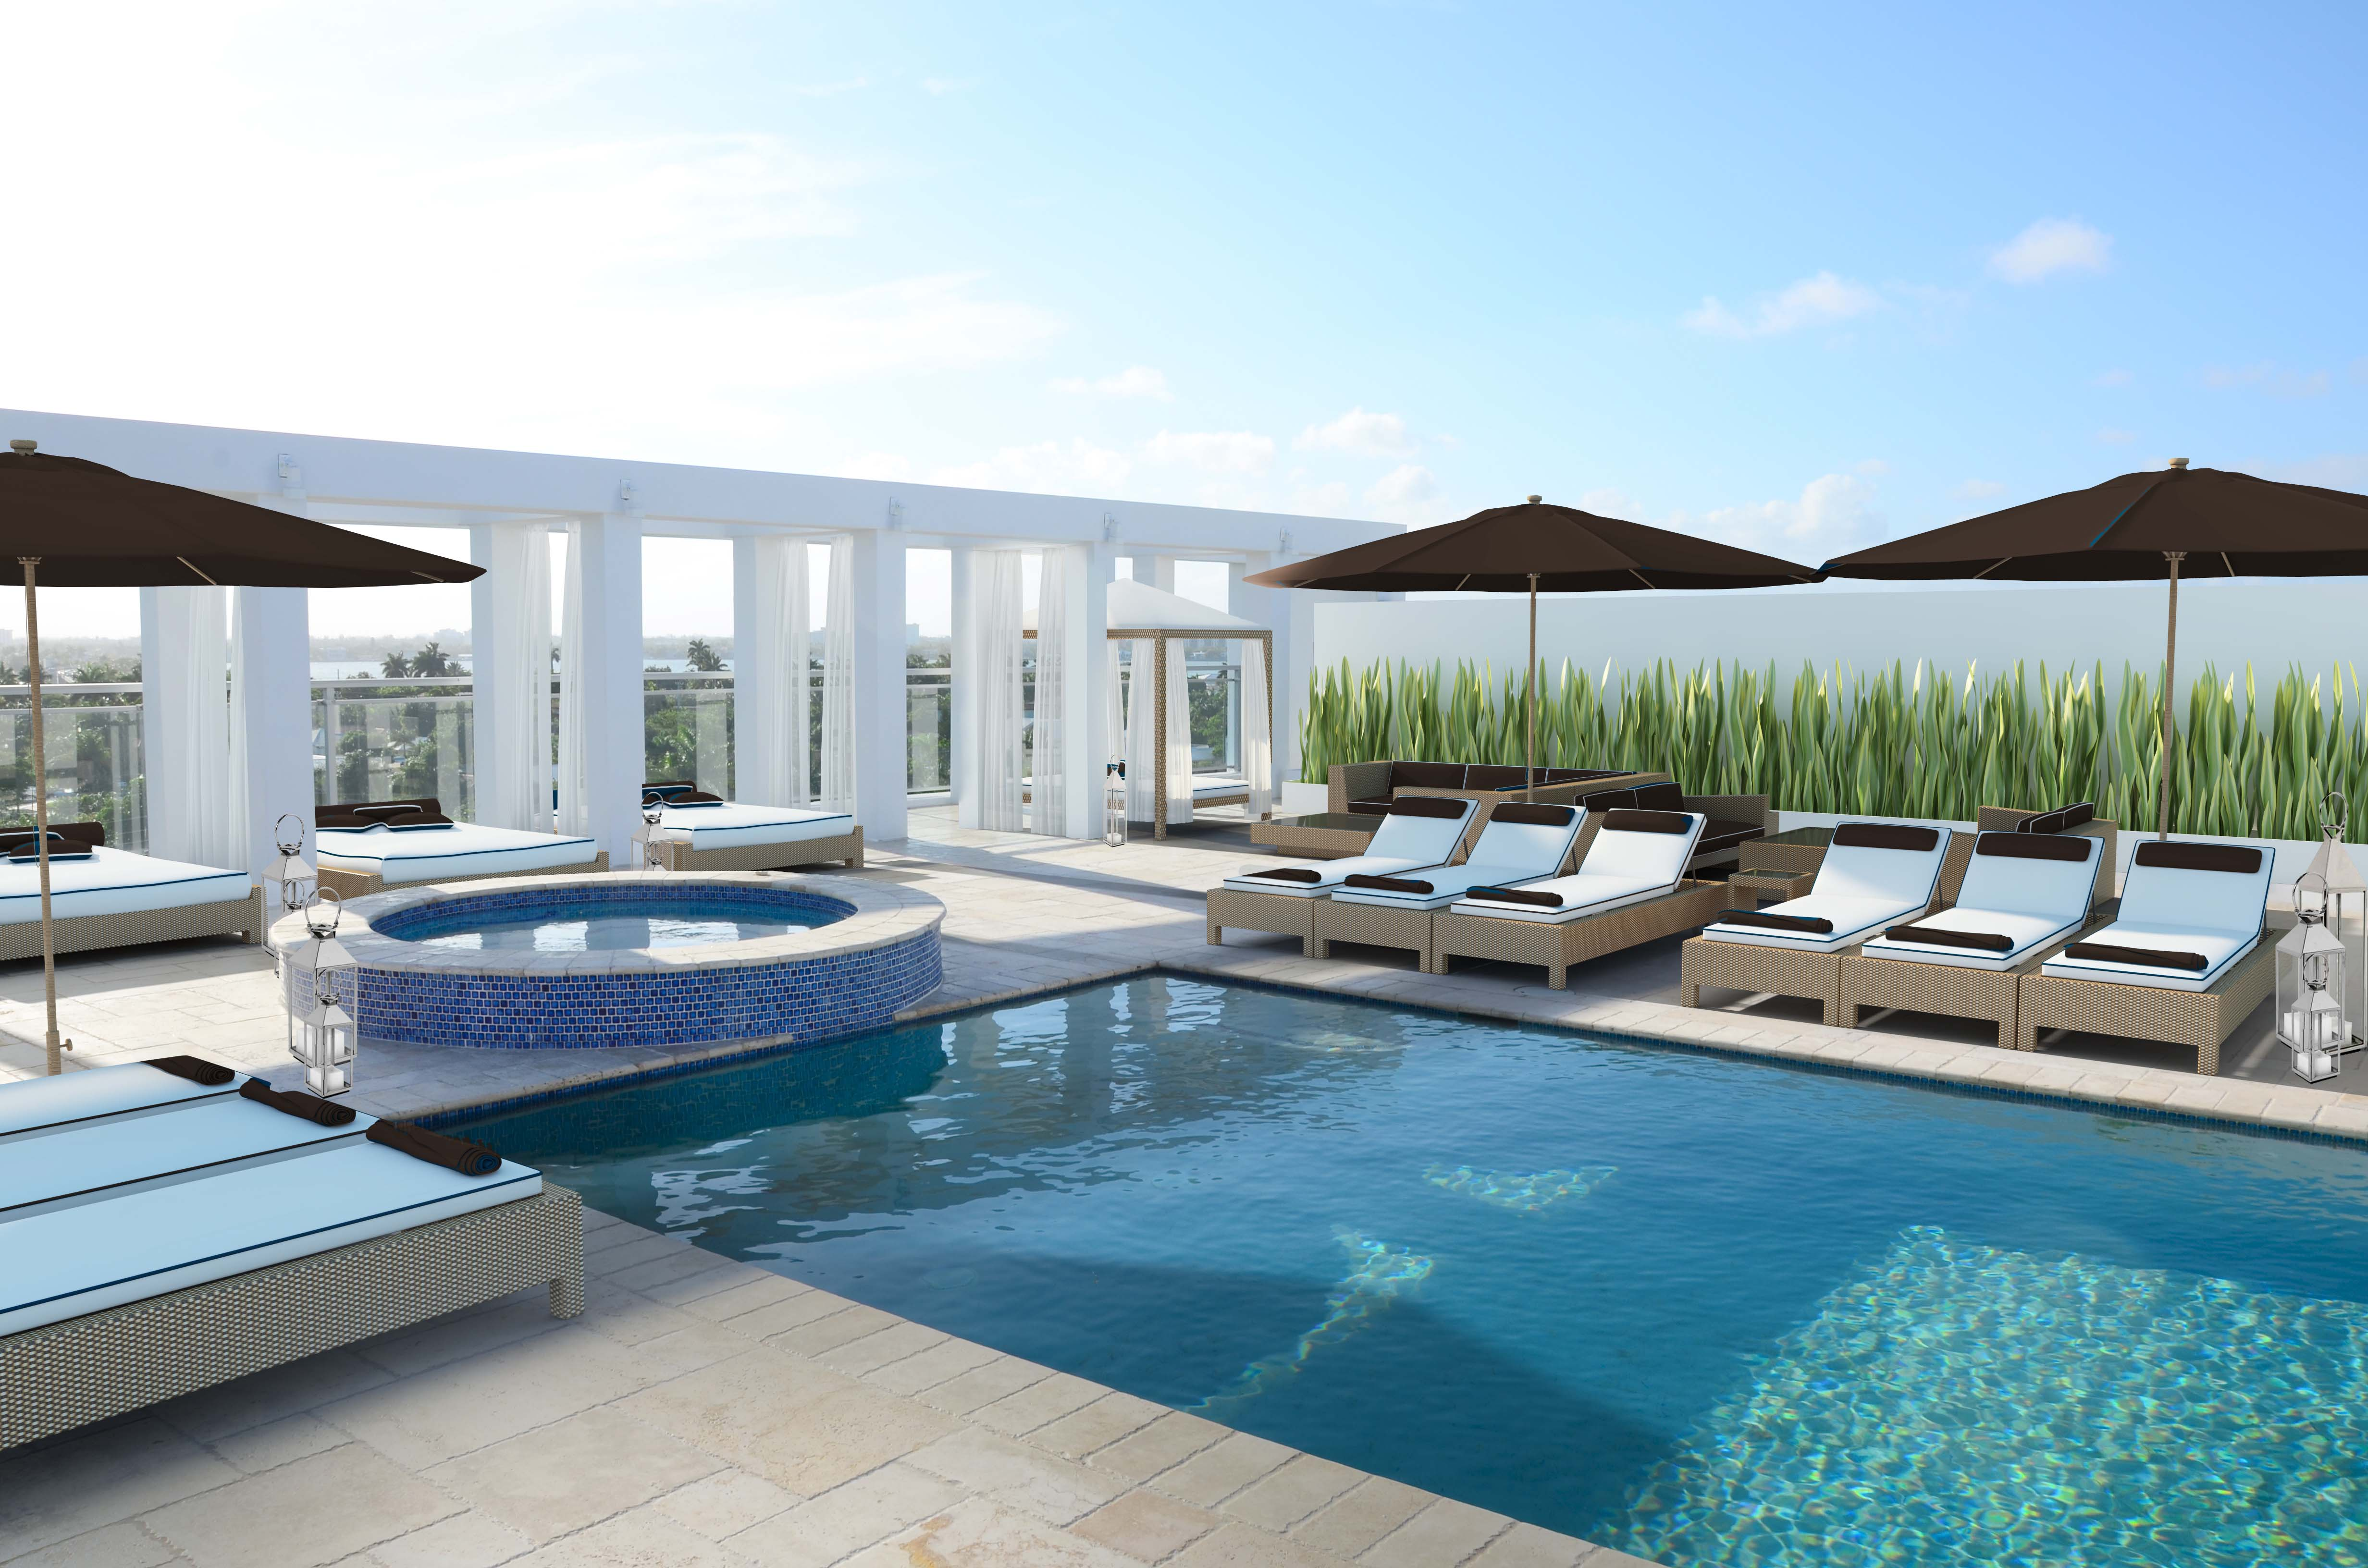 Riva Bay Harbor rooftop pool rendering